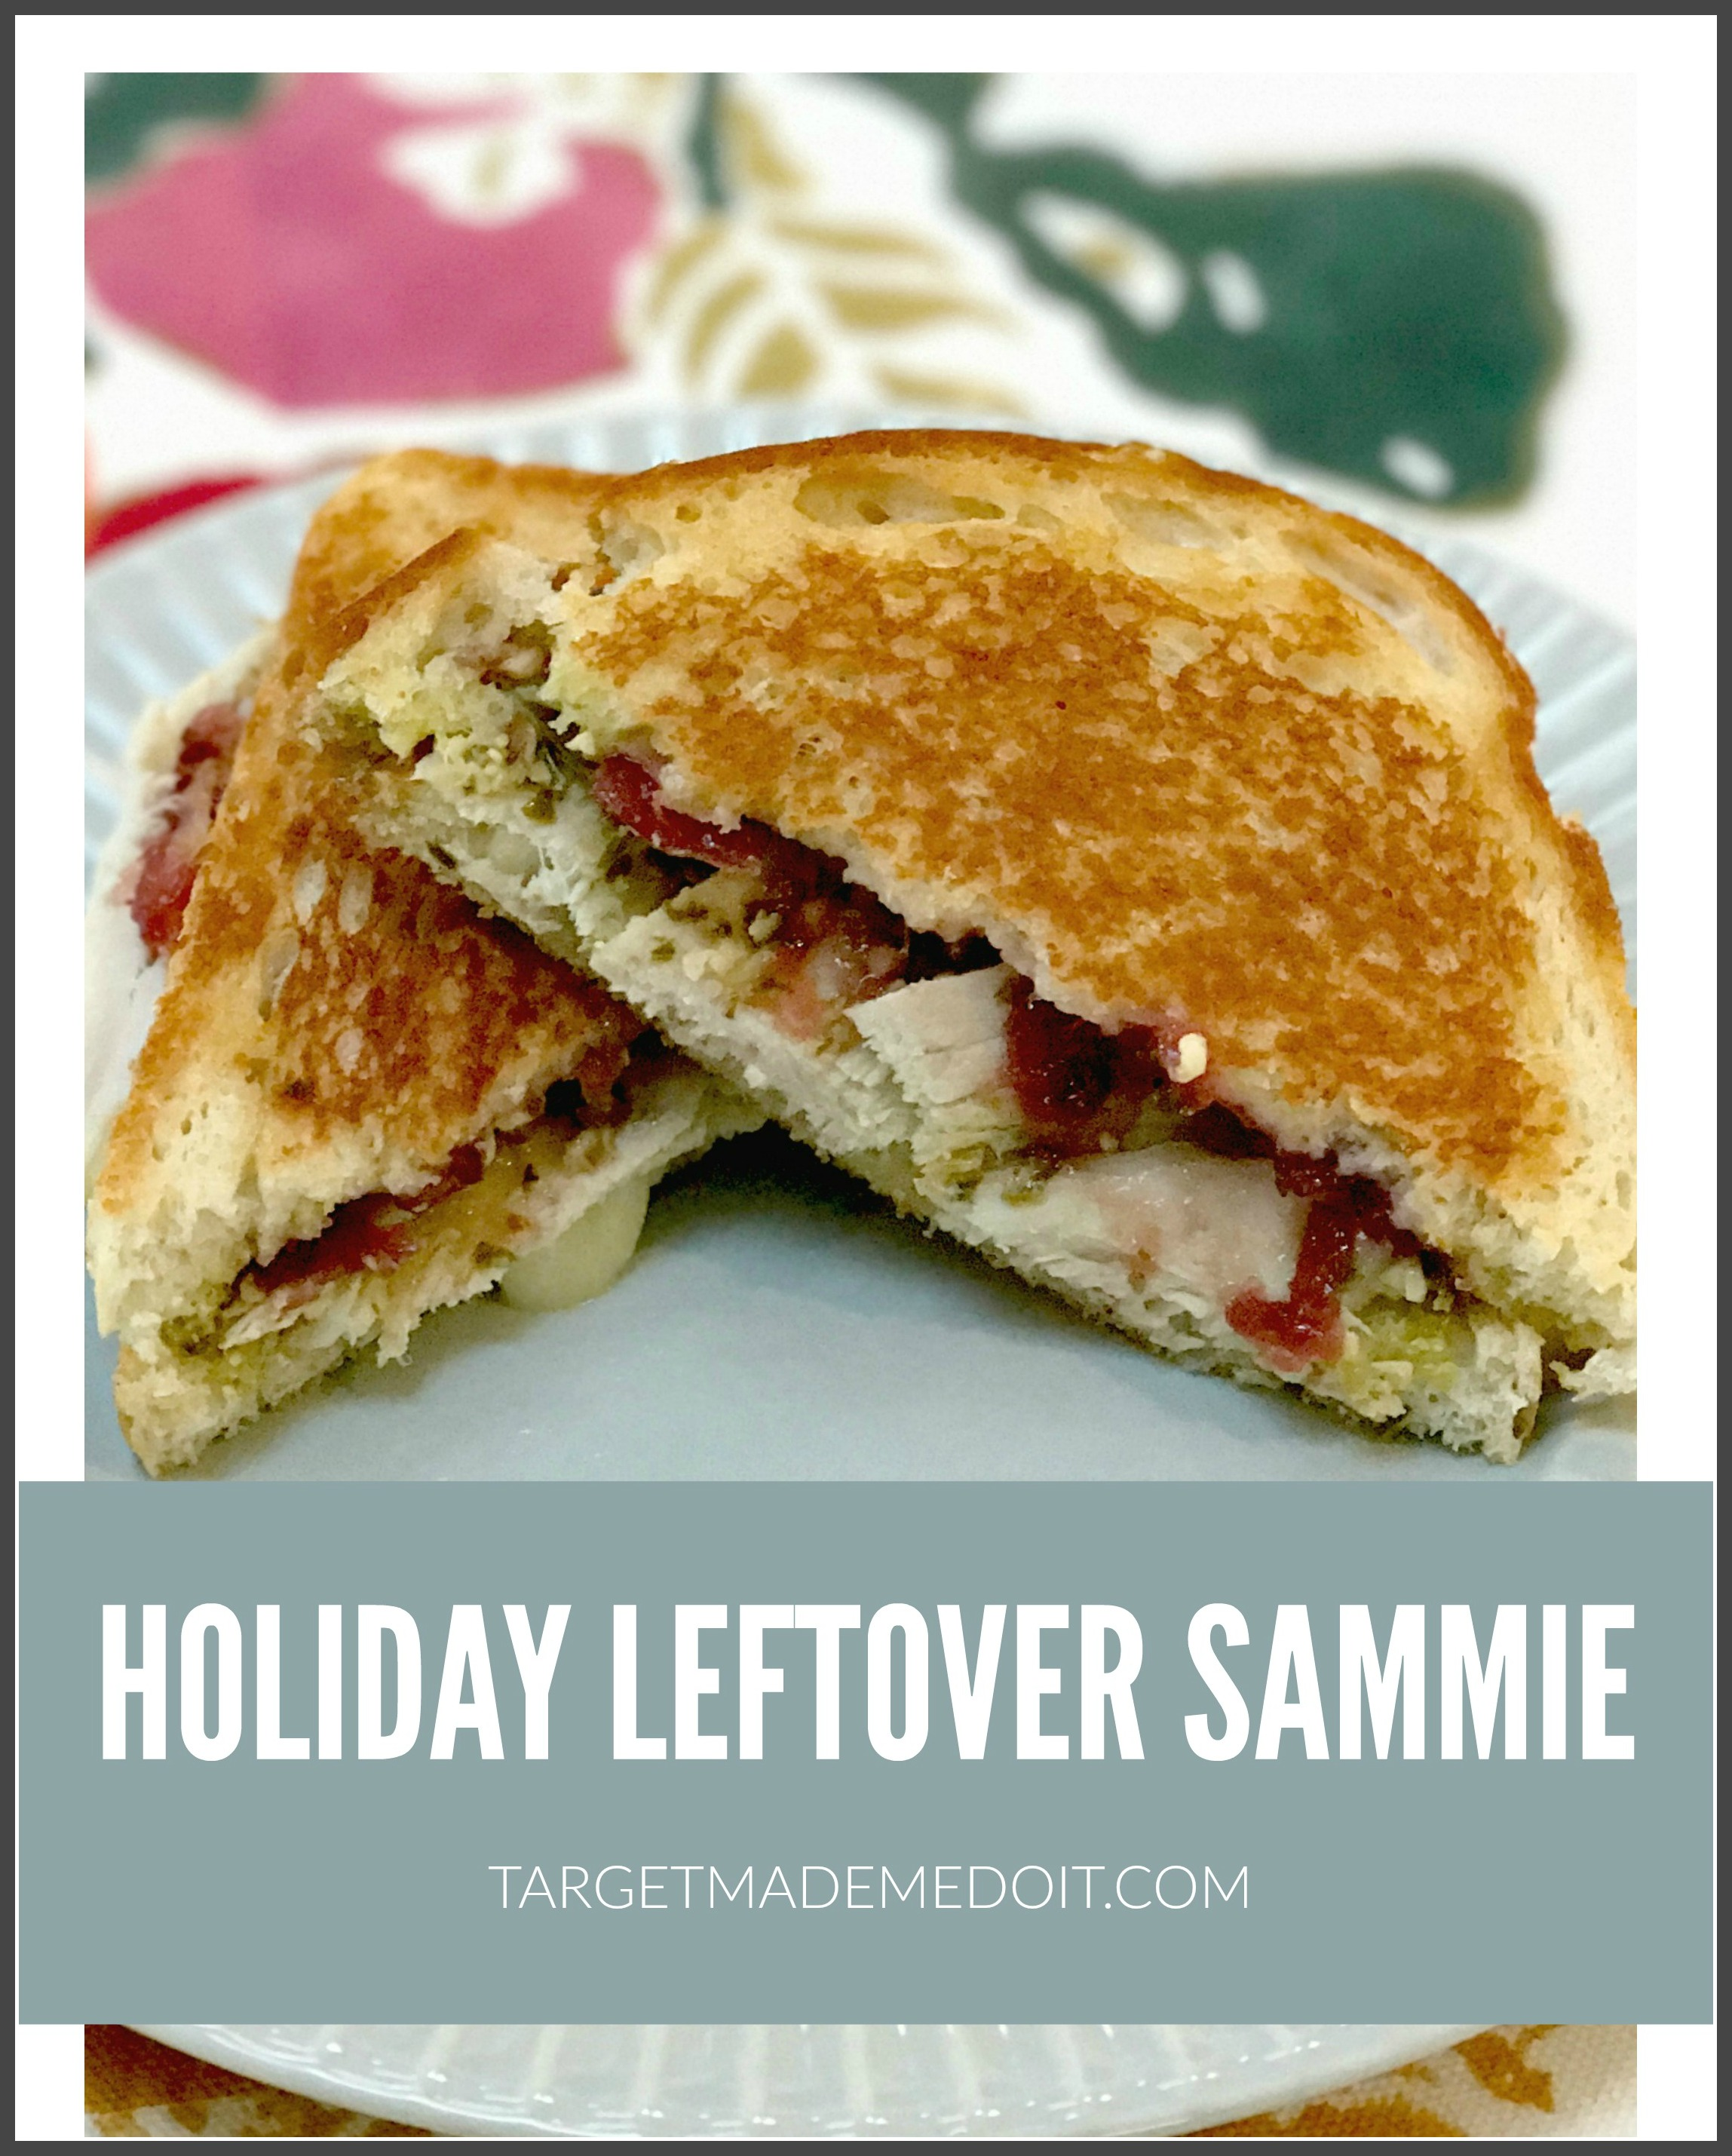 Holiday Leftover Sammie